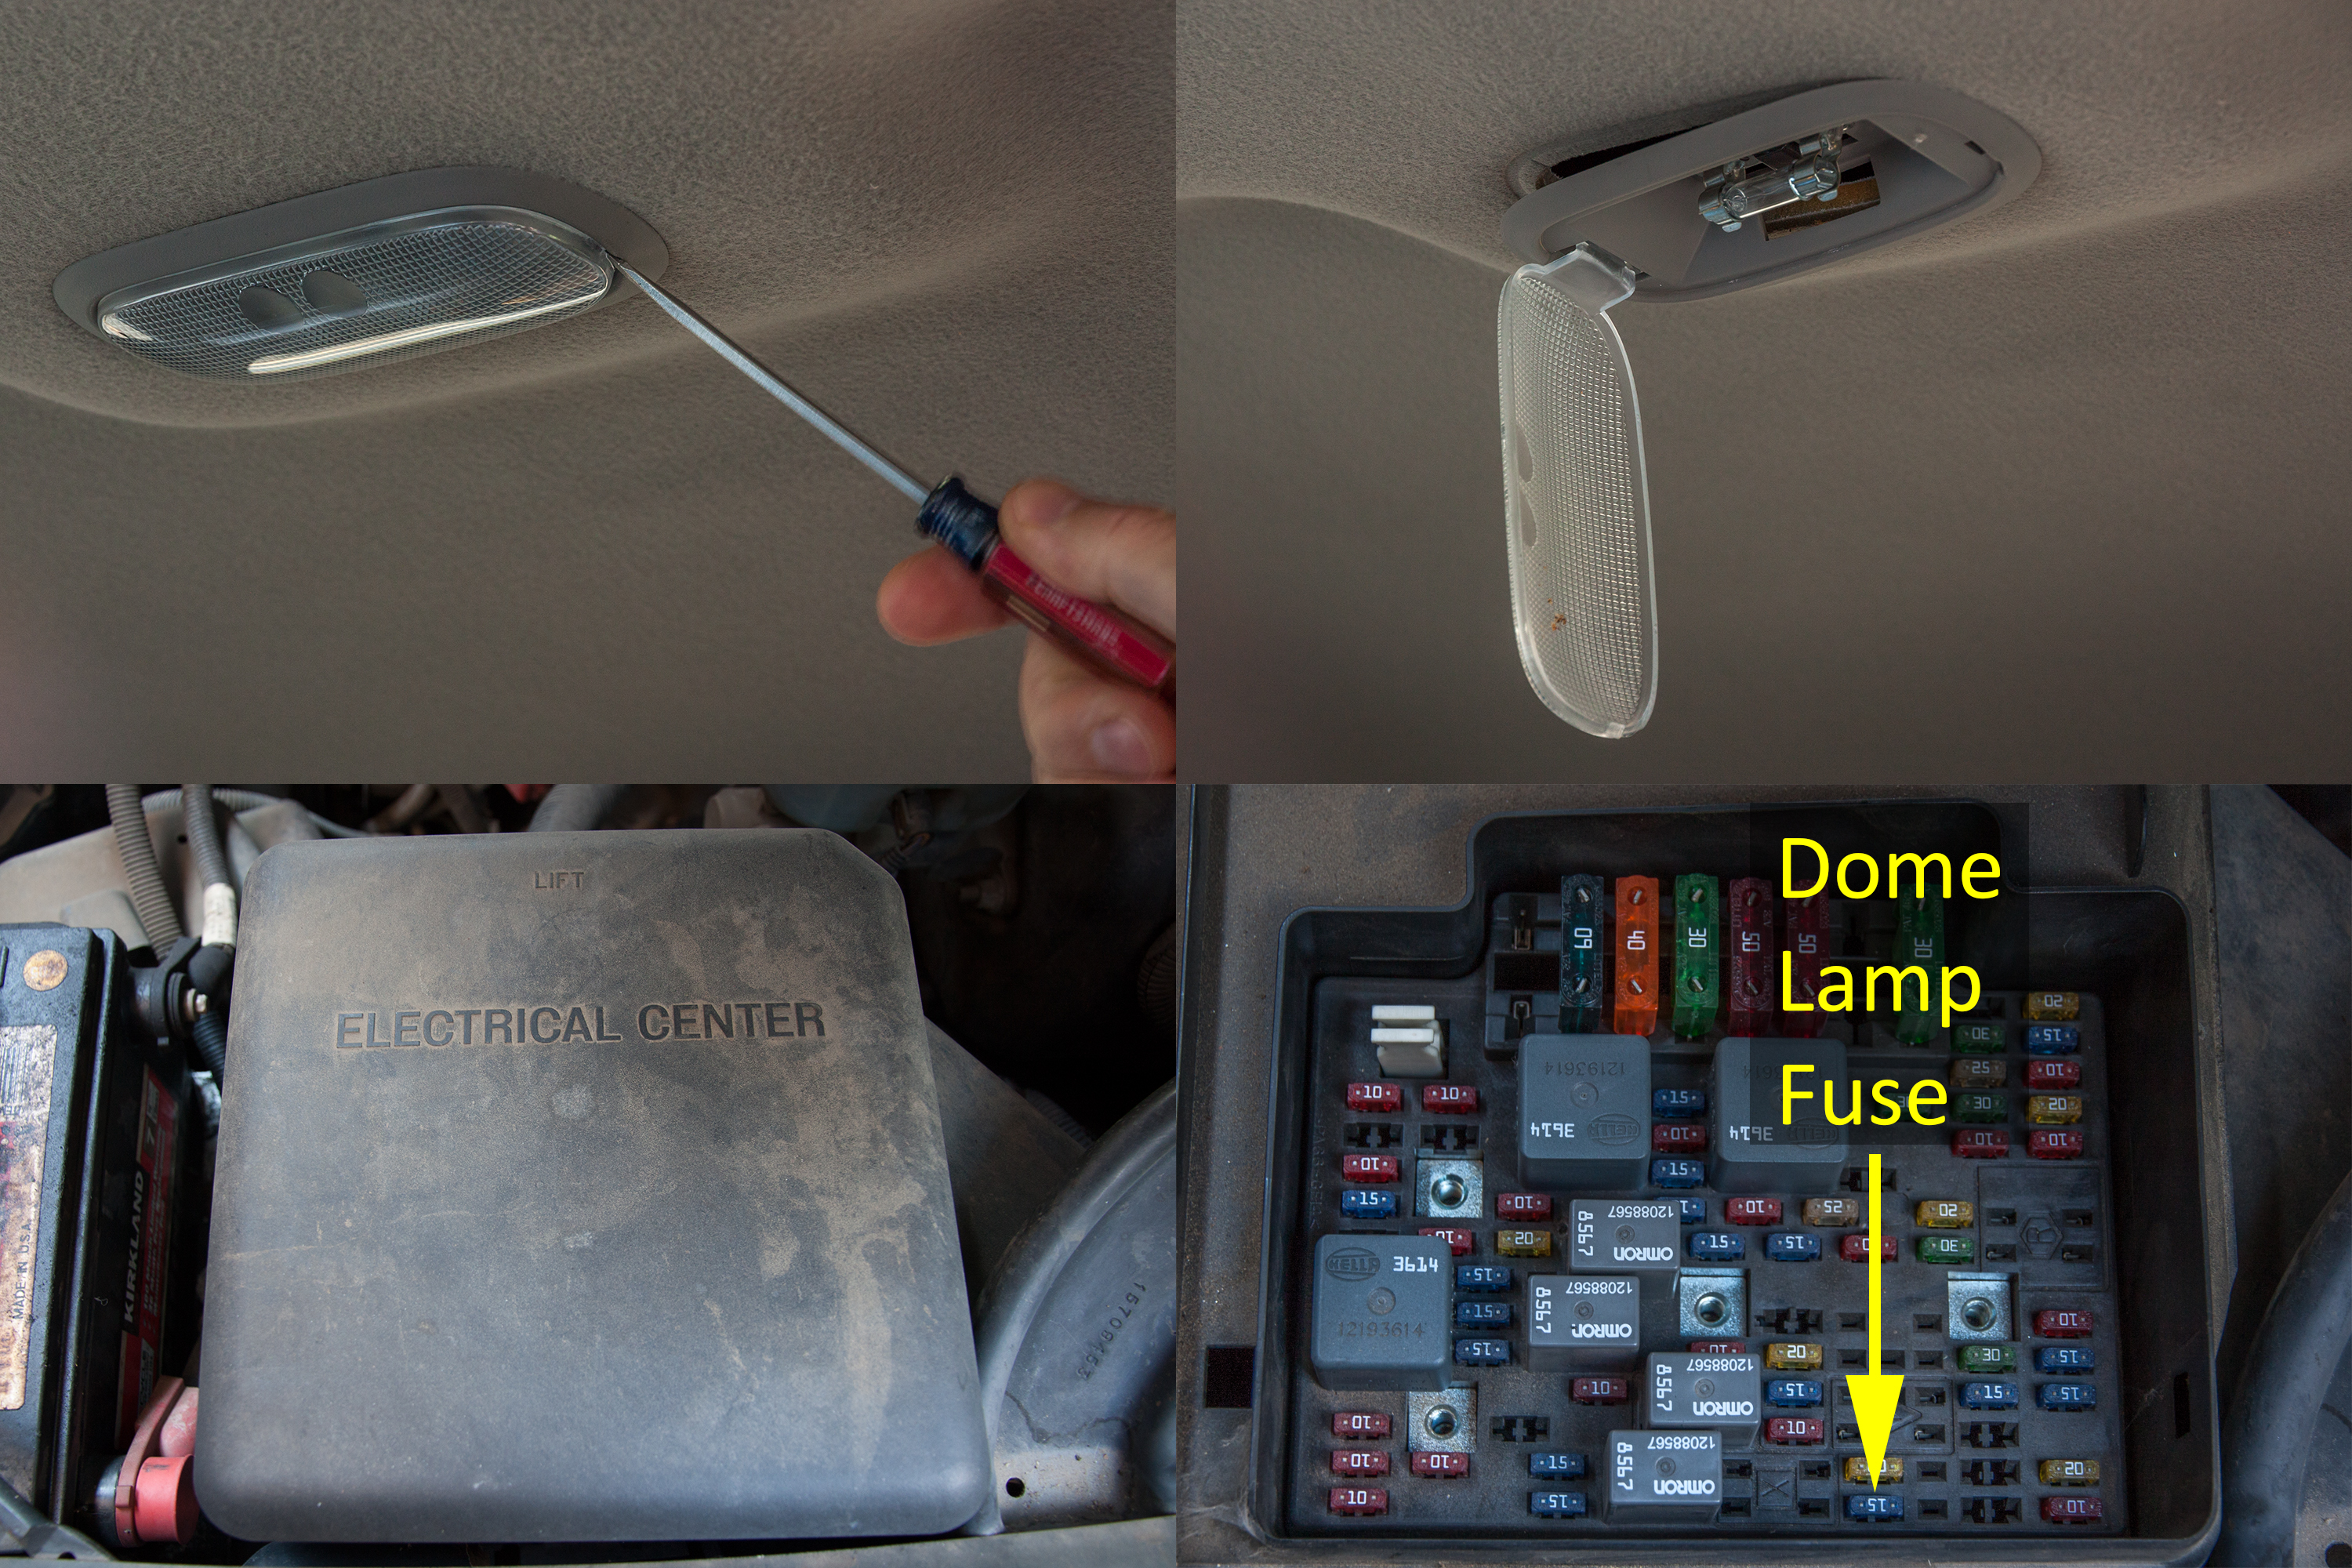 Car Fuse Box Dome : Gm dome light fuse box wiring diagram